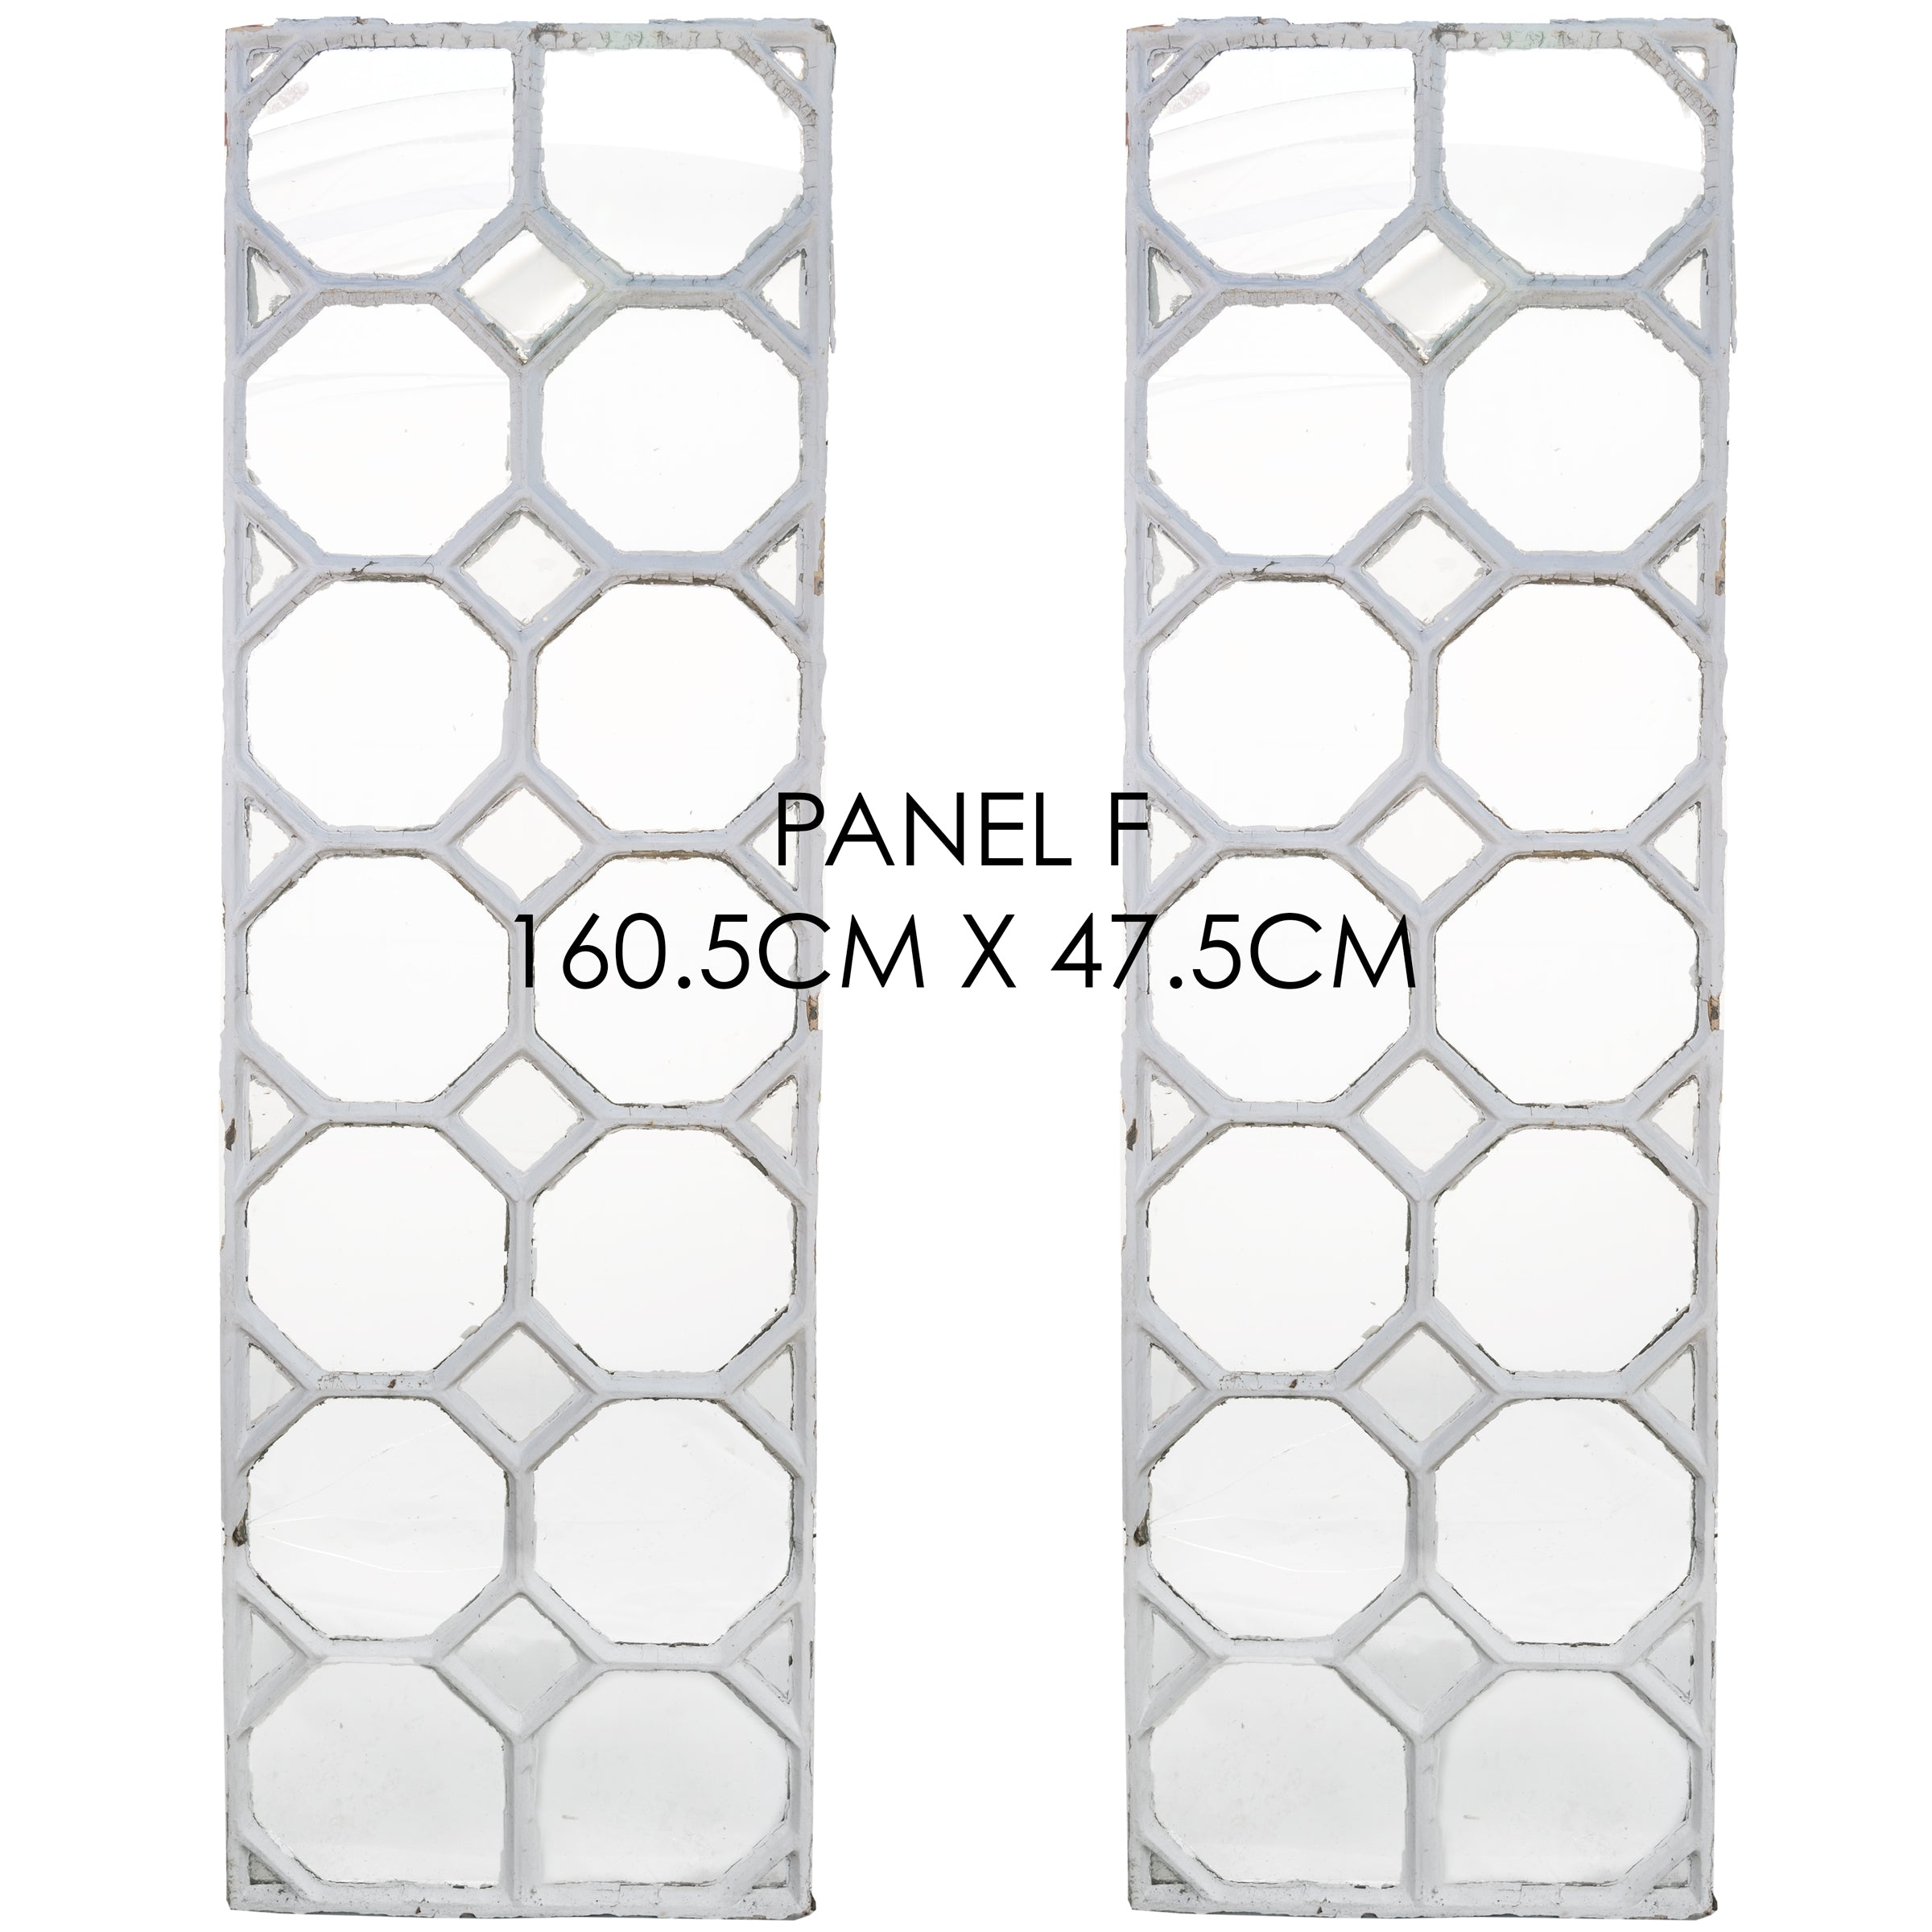 Reclaimed Late 19th Century Crittall Style Honeycomb Window Panels - F